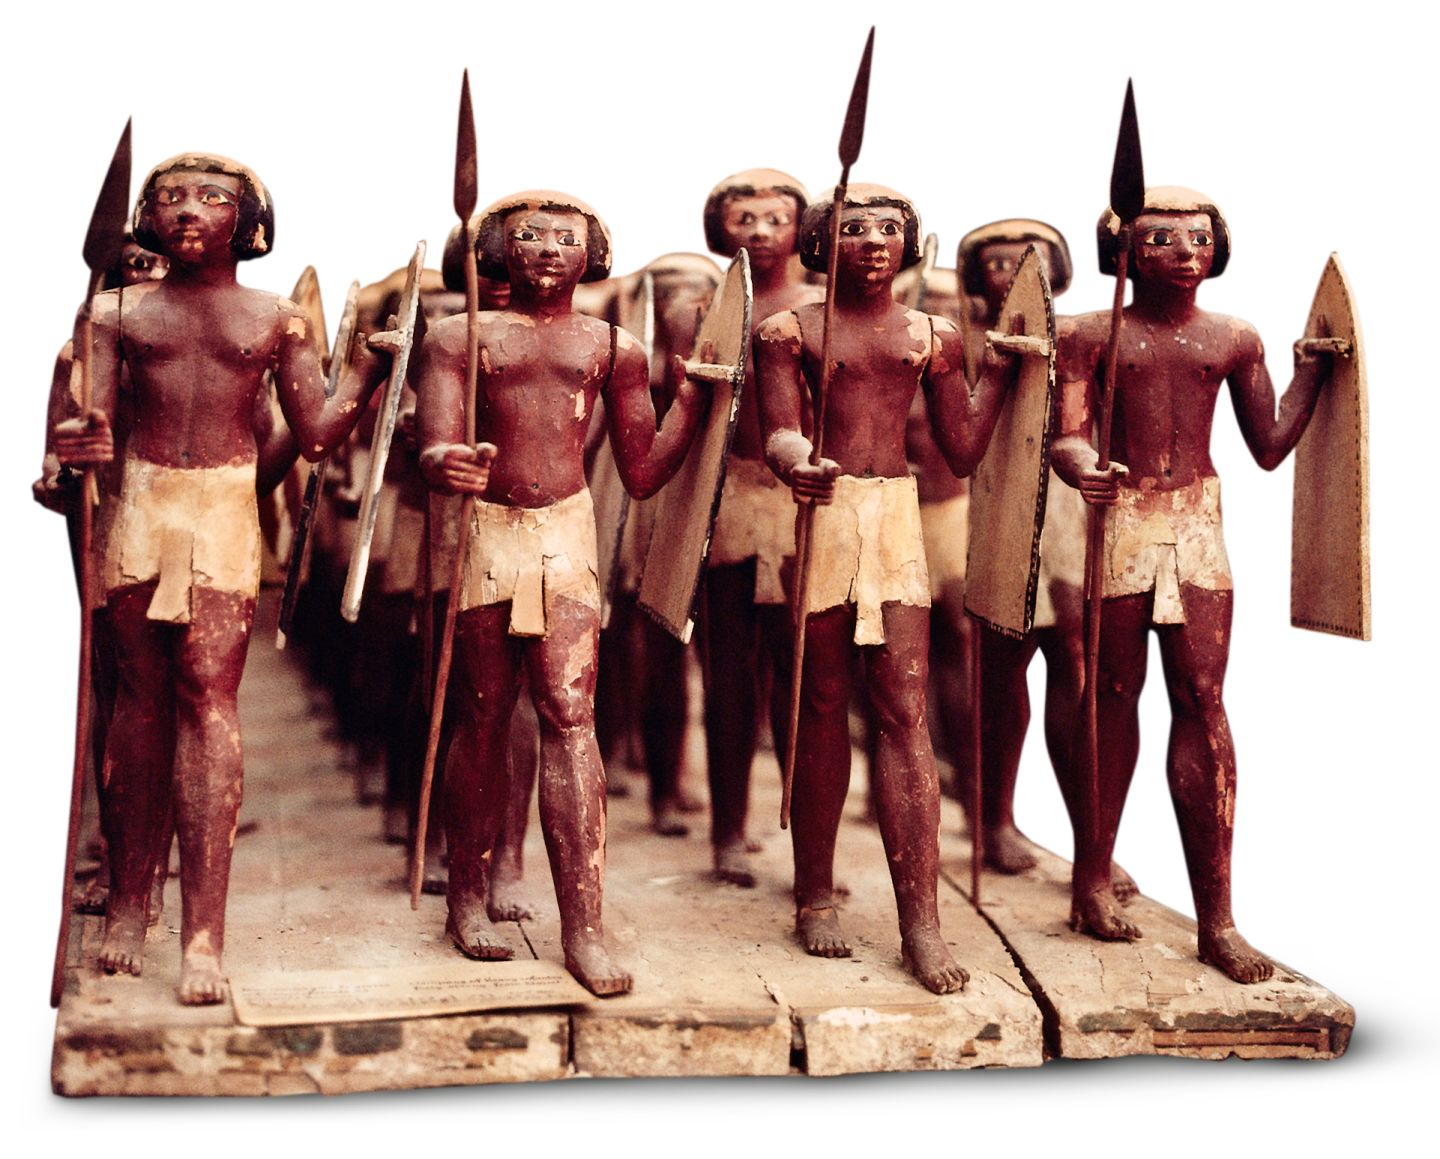 Military structure and warfare of Ancient Egypt? : AskHistorians